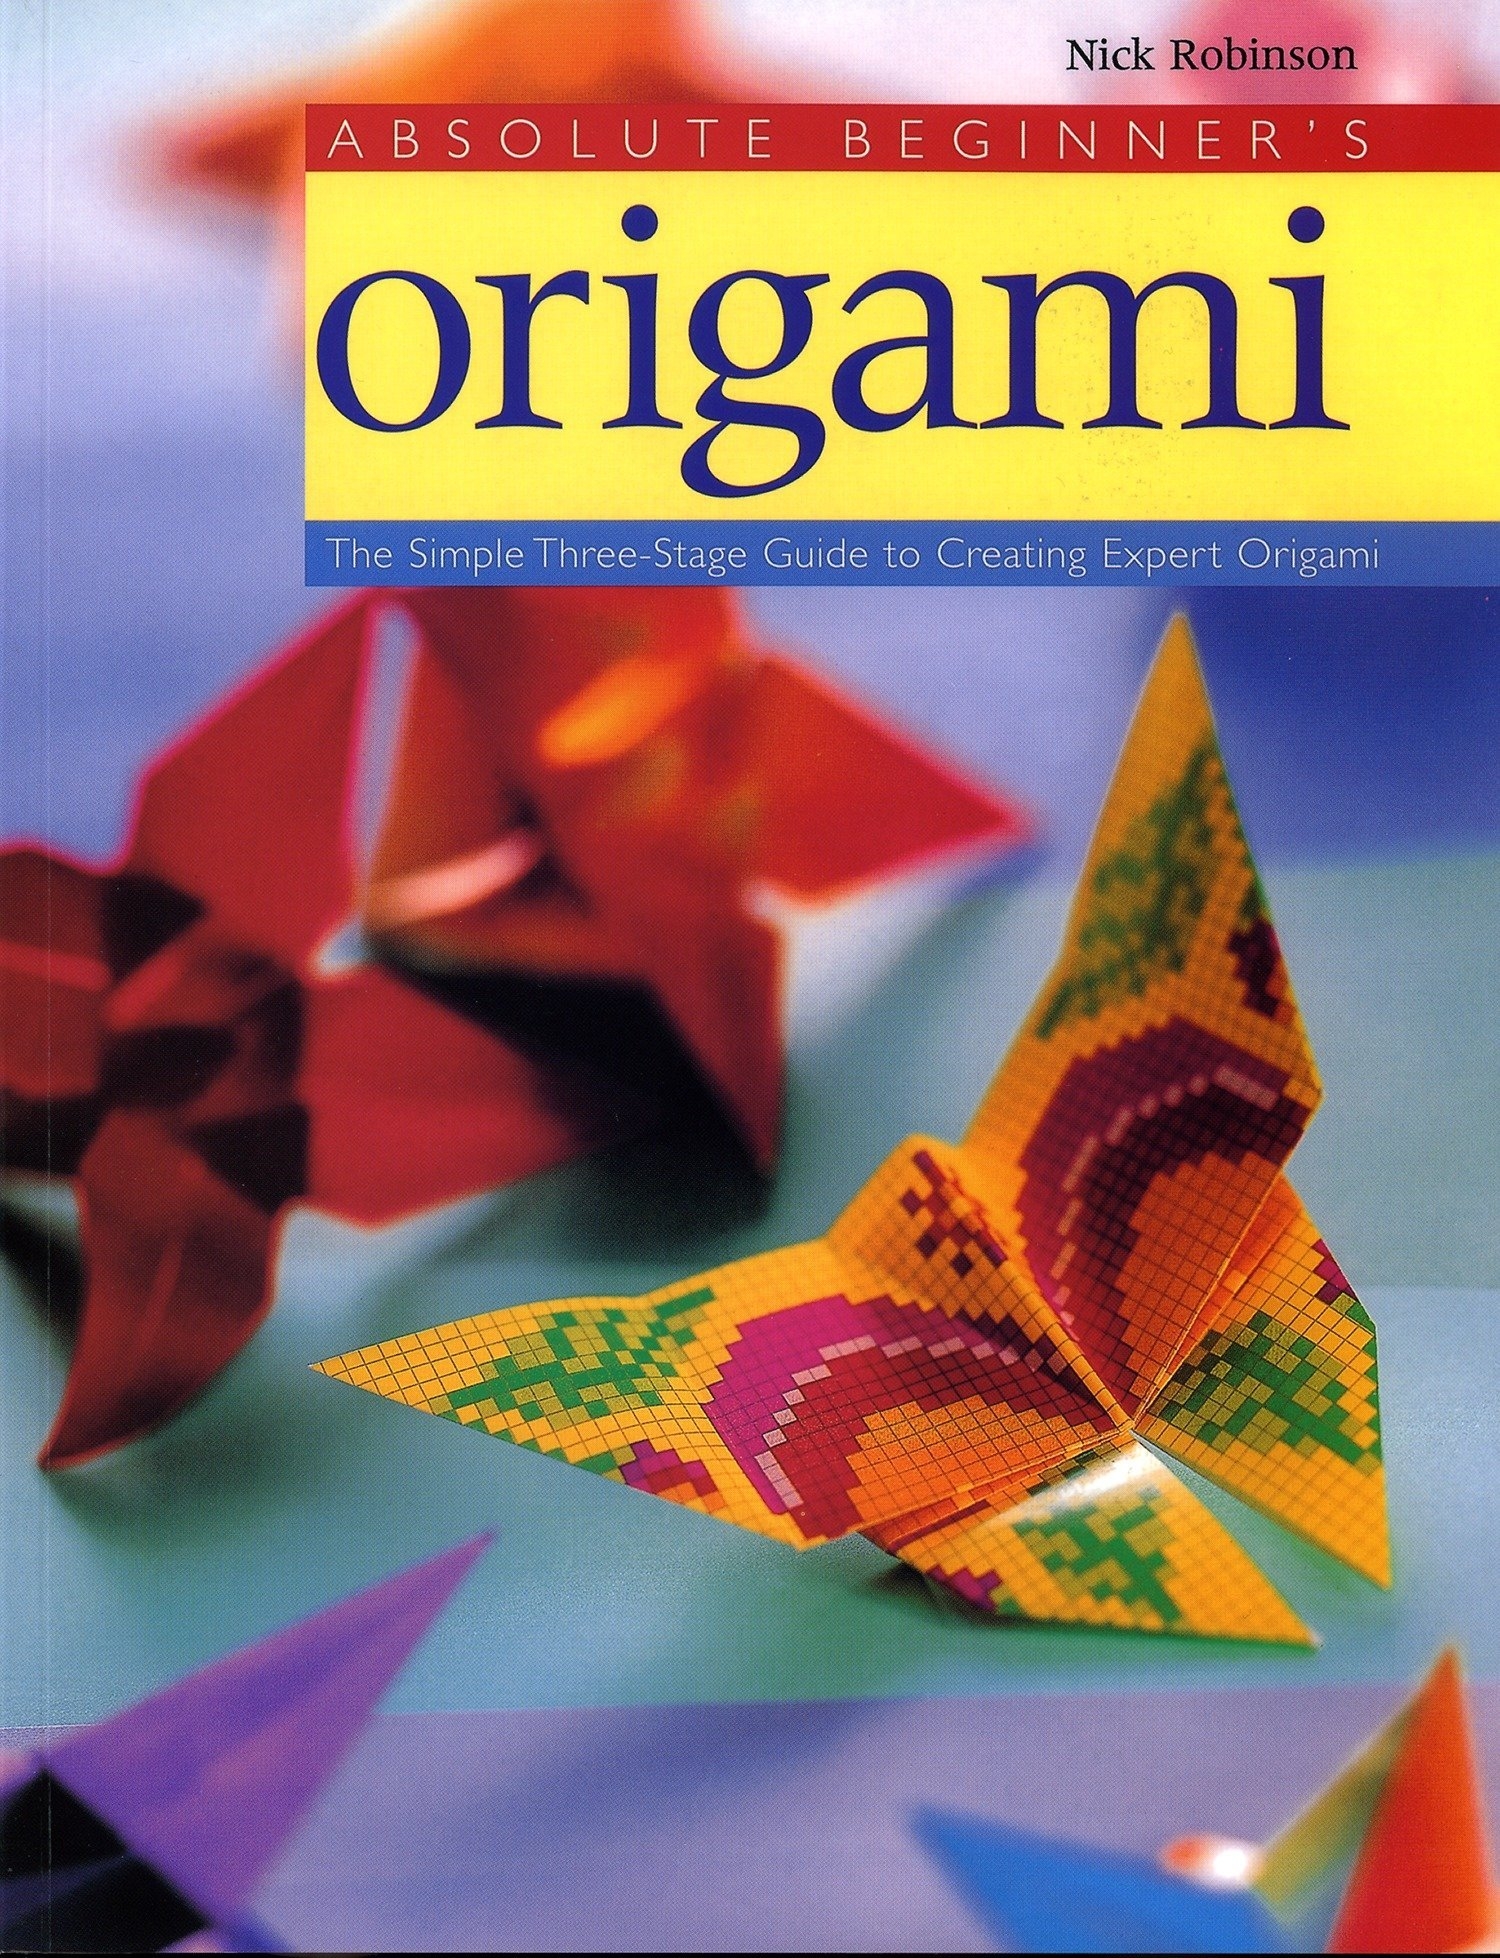 Absolute Beginners Origami The Simple Three Stage Guide To Fold Mouse From Paper Diagram Of Themouse Creating Expert Nick Robinson 9780823000722 Books